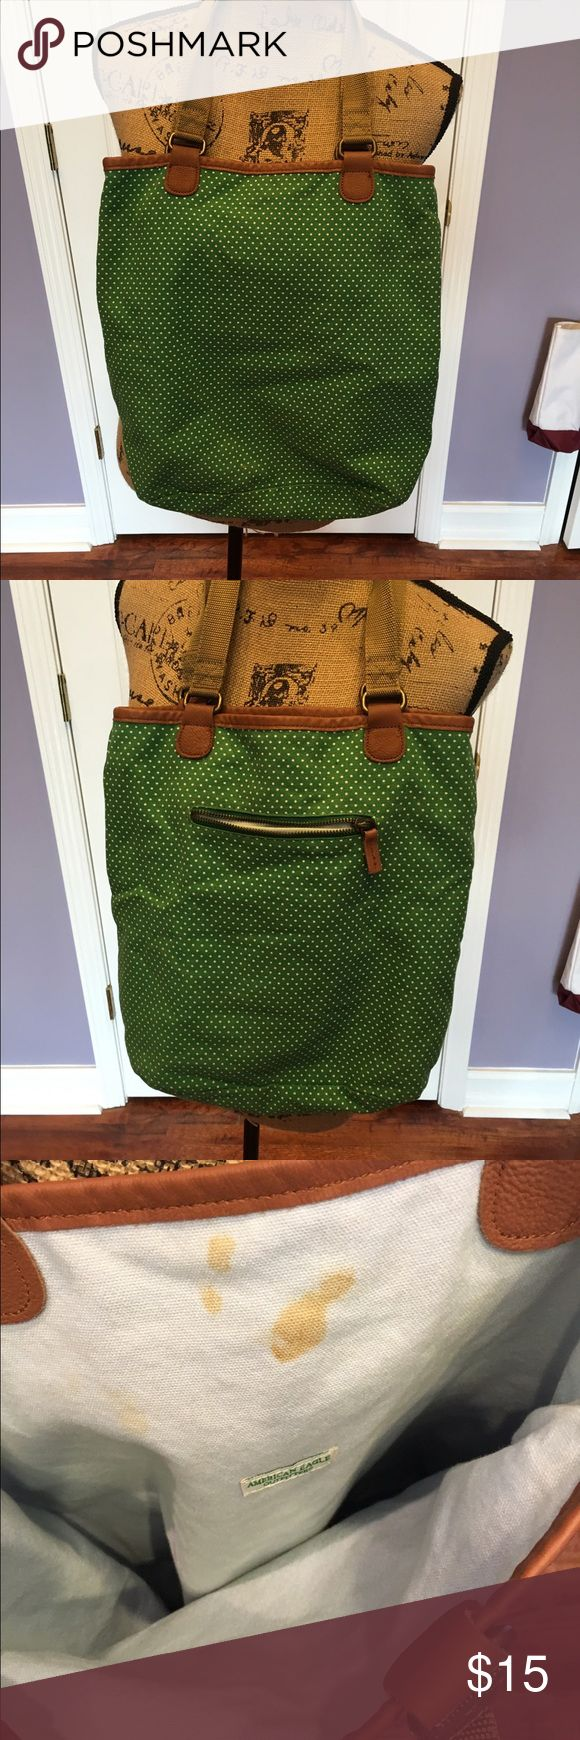 American Eagle Outfitter Green TOTE BAG Purse Super cute!  Needs a wash or wipe down on the inside. Sturdy and stylish! American Eagle Outfitters Bags Totes